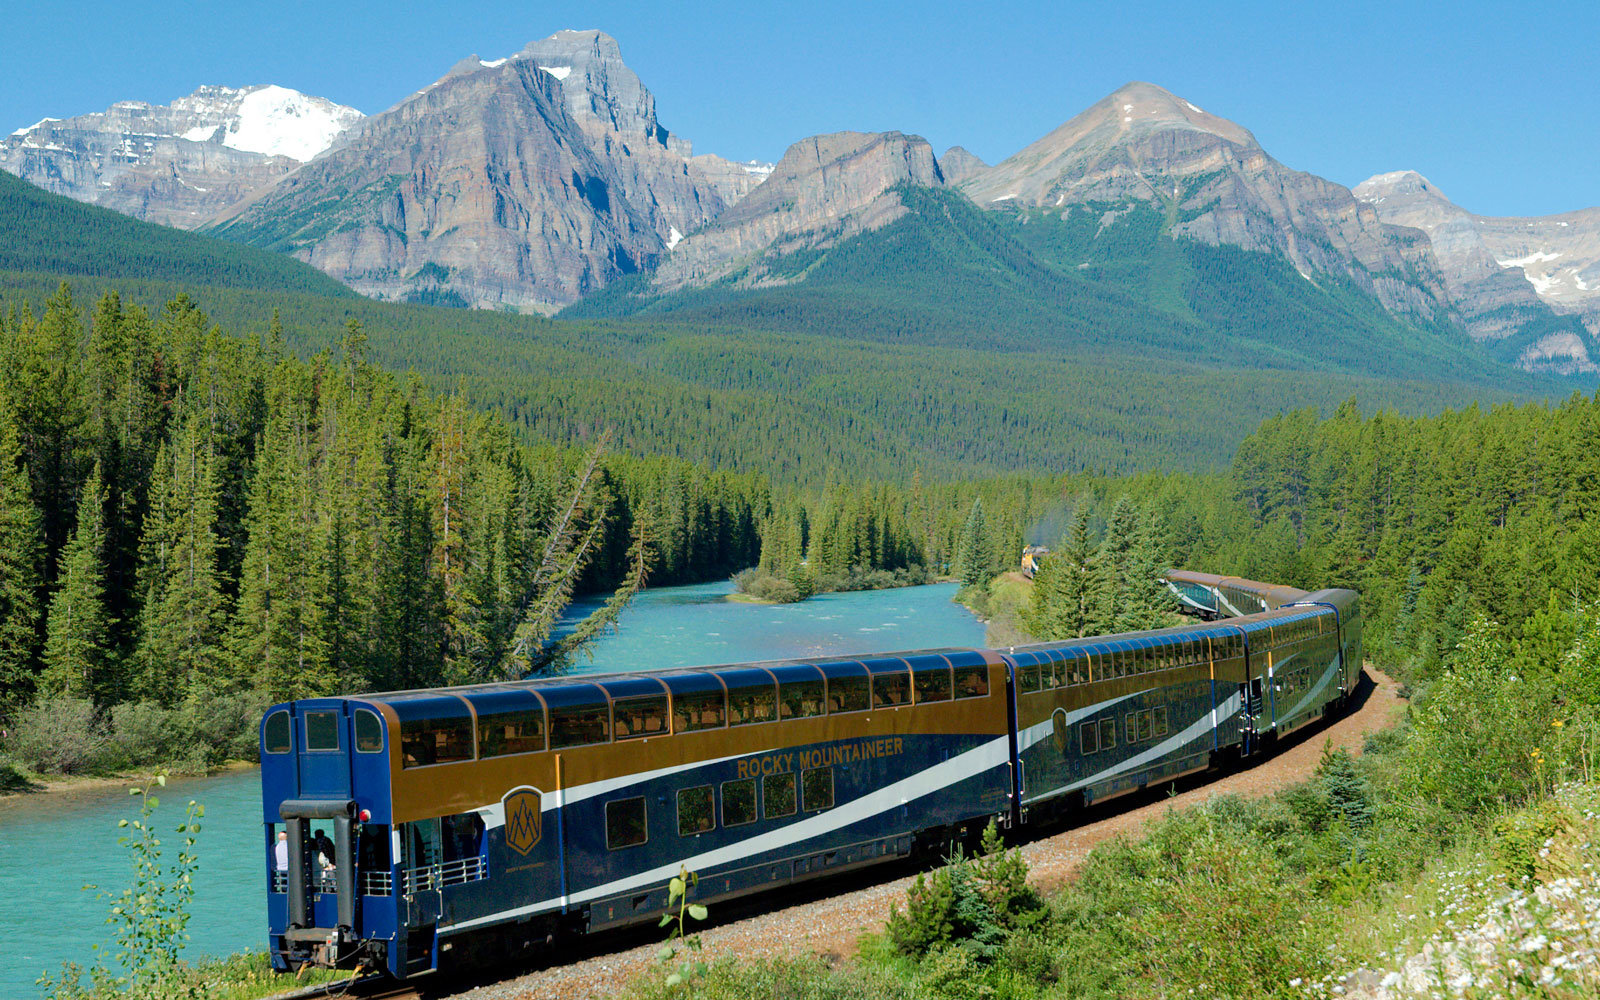 Free Fall Bc Nature Wallpaper How To Take A Solo Luxury Train Trip Through Canada S